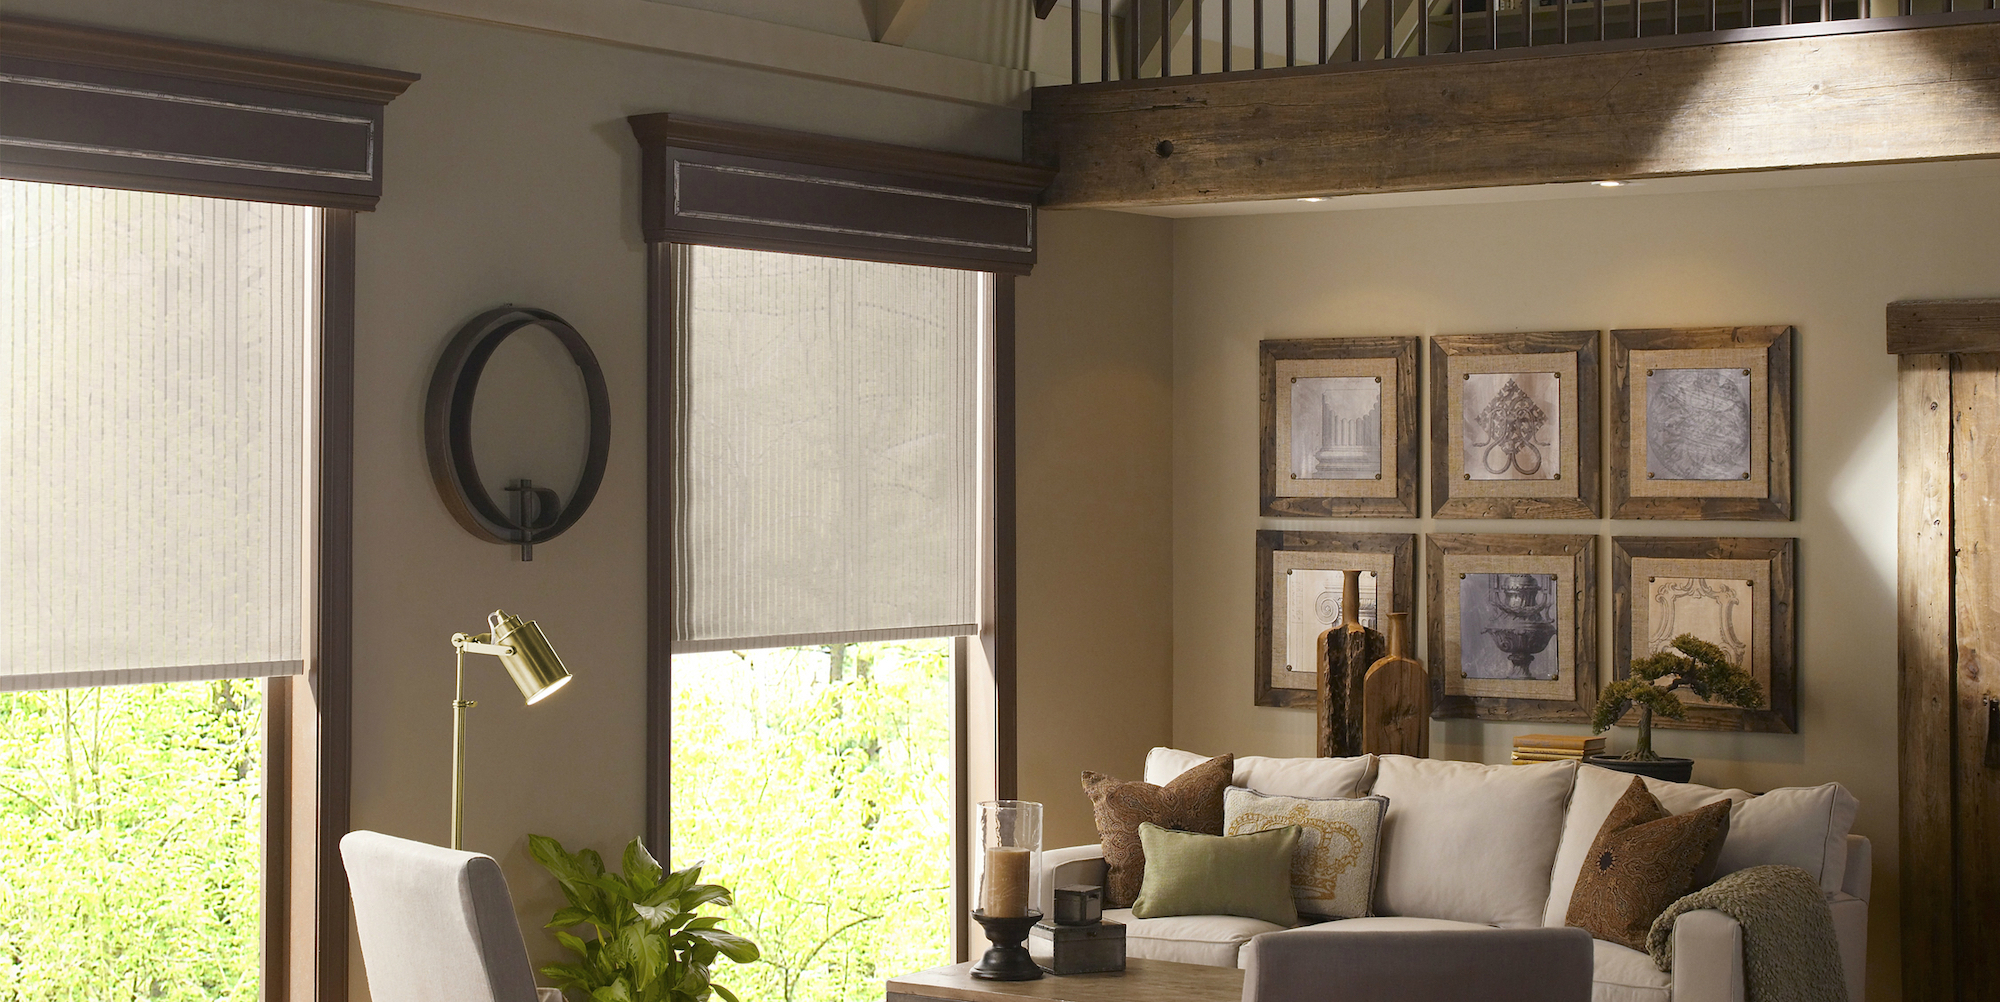 Why Make the Switch from Manual to Motorized Window Treatments?